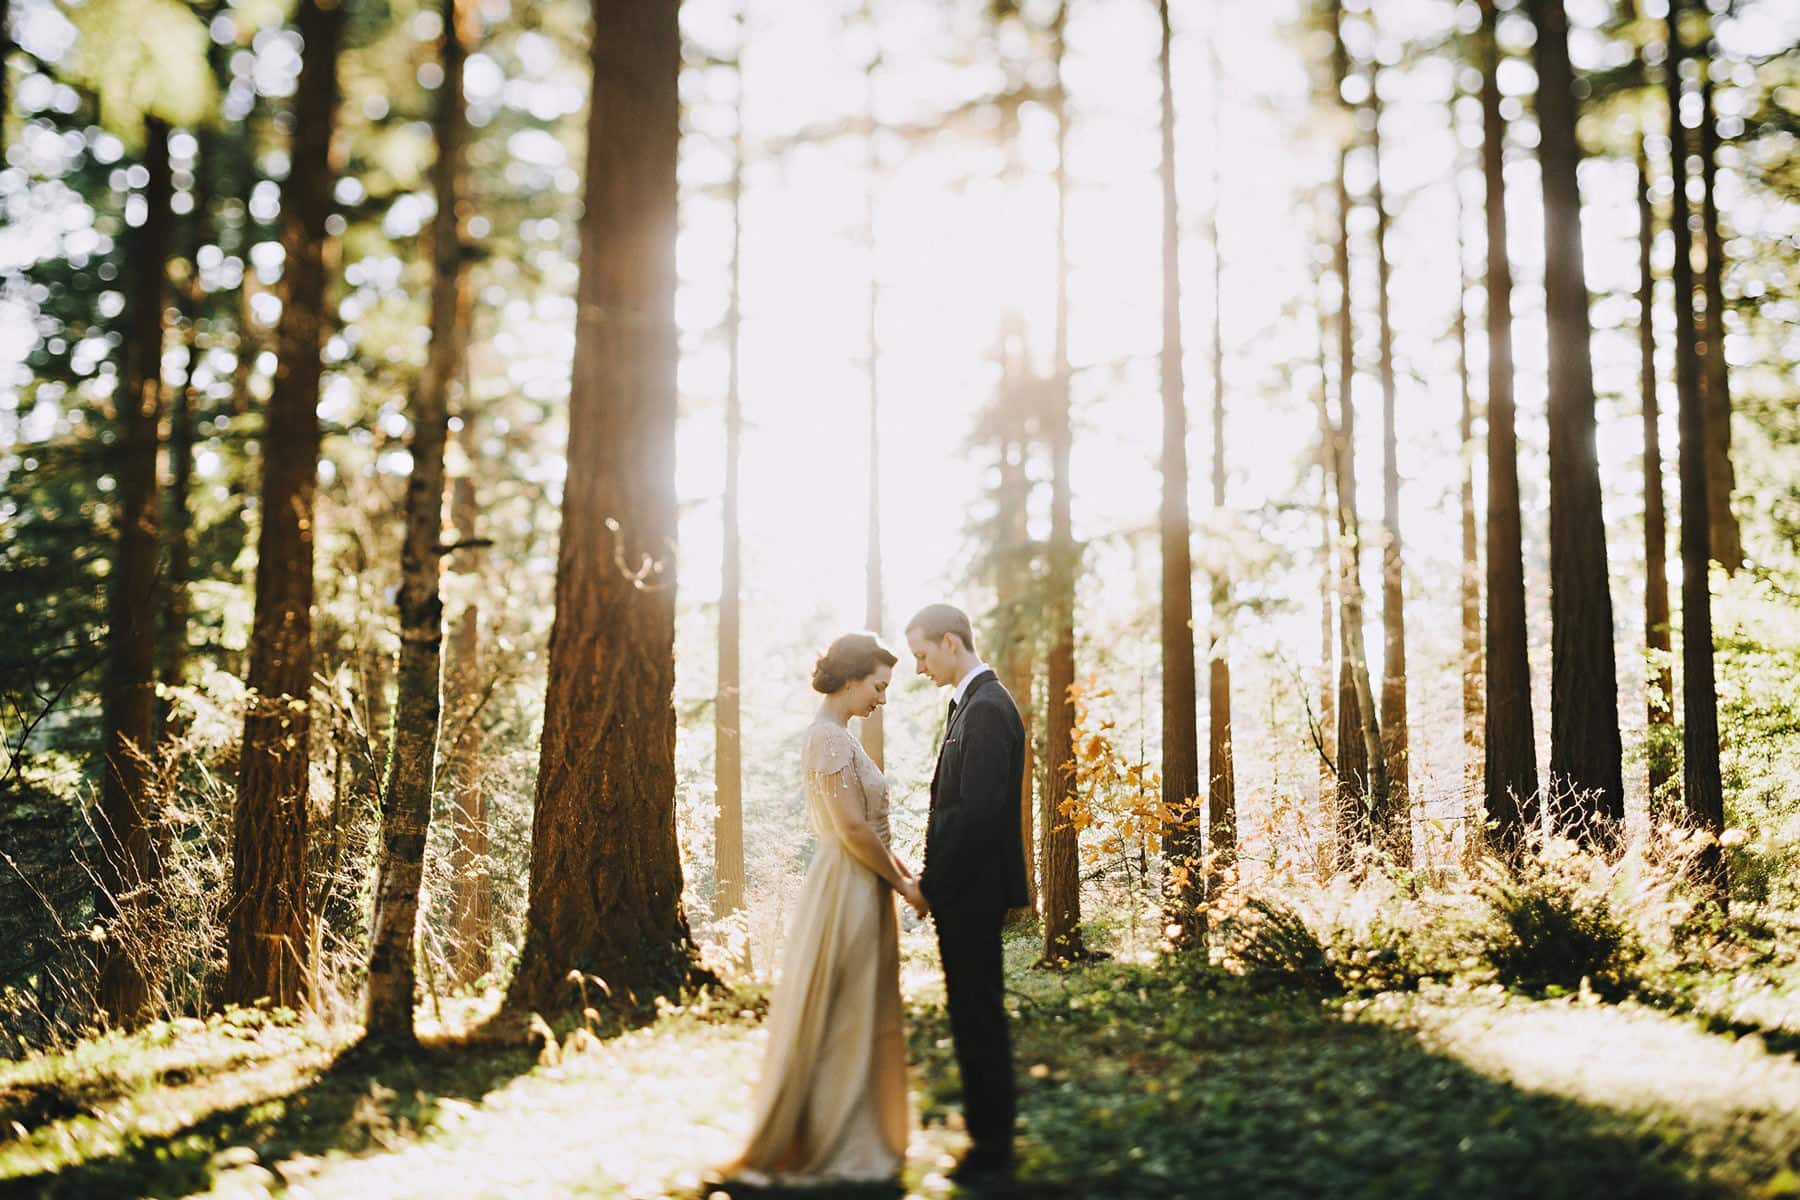 Portland Oregon Elopement | Jameykay + Arlie